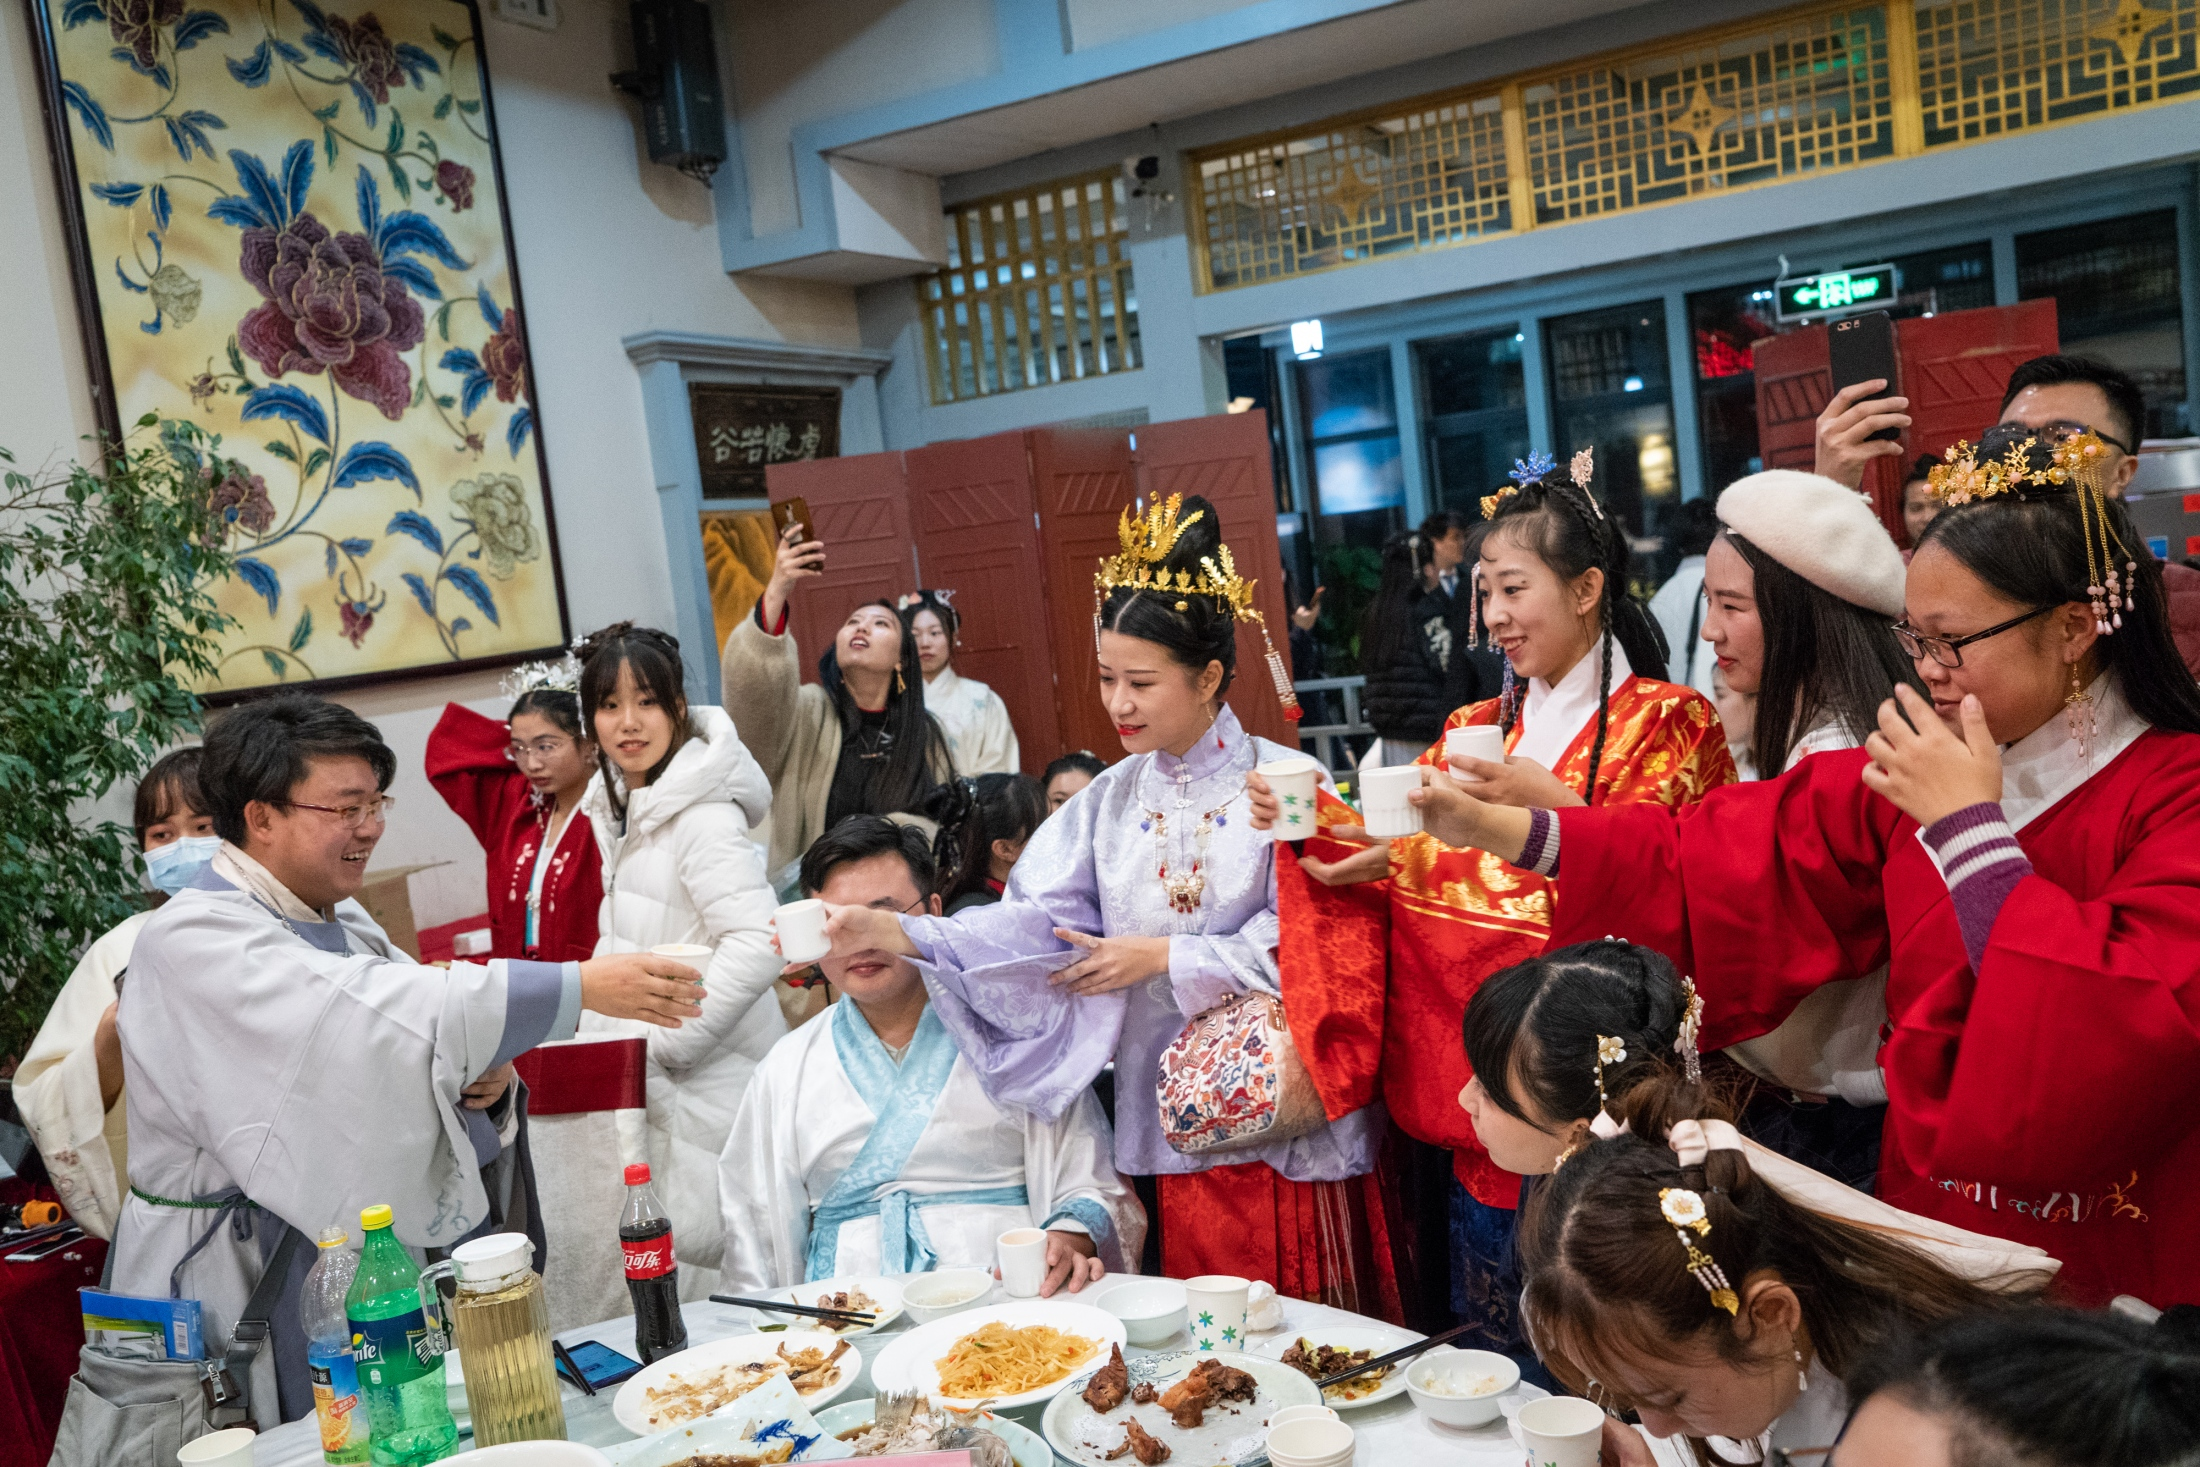 Hanfu enthusiasts at a dinner in Beijing, November 2018.